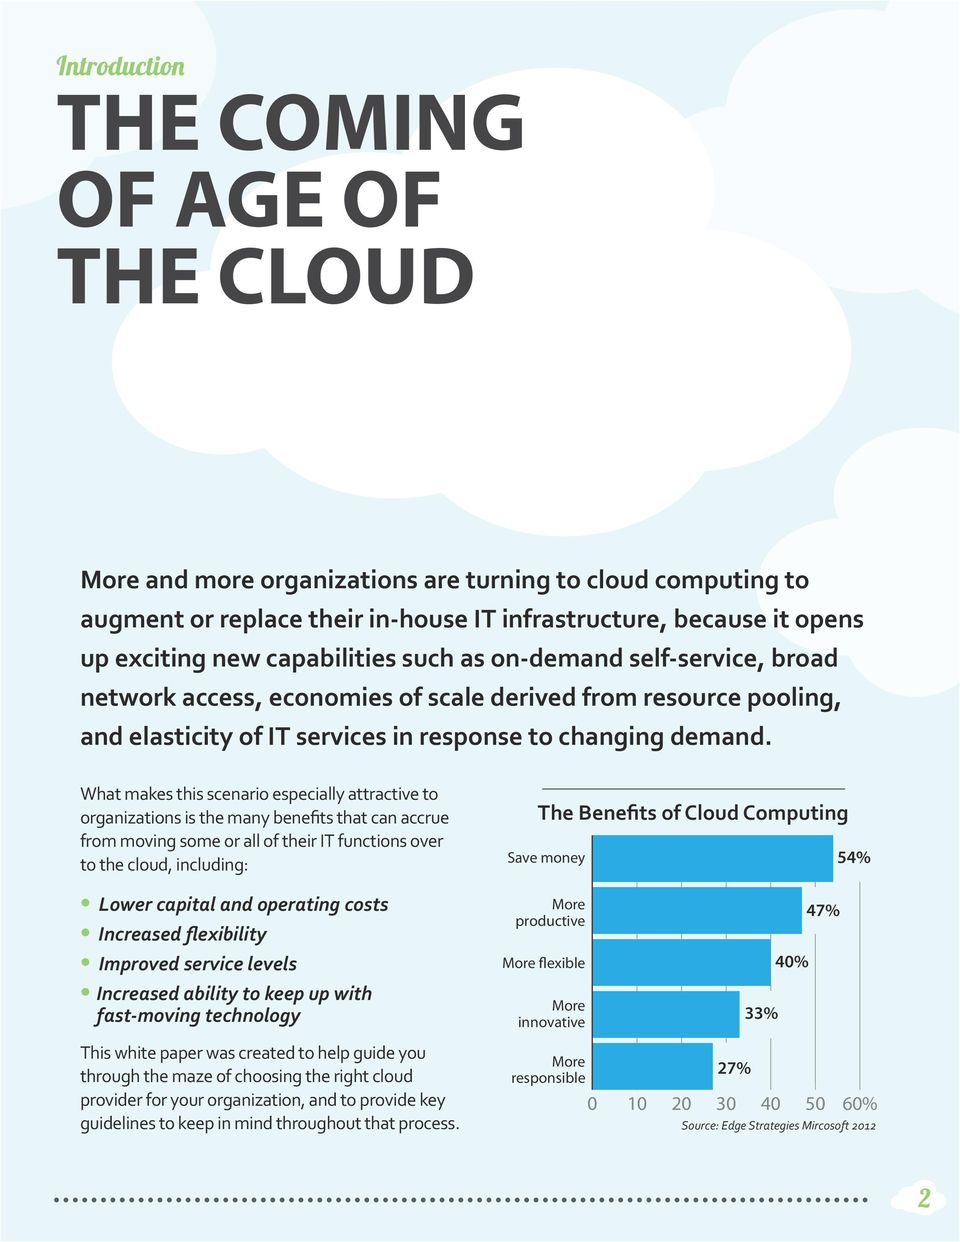 What makes this scenario especially attractive to organizations is the many benefits that can accrue from moving some or all of their IT functions over to the cloud, including: The Benefits of Cloud